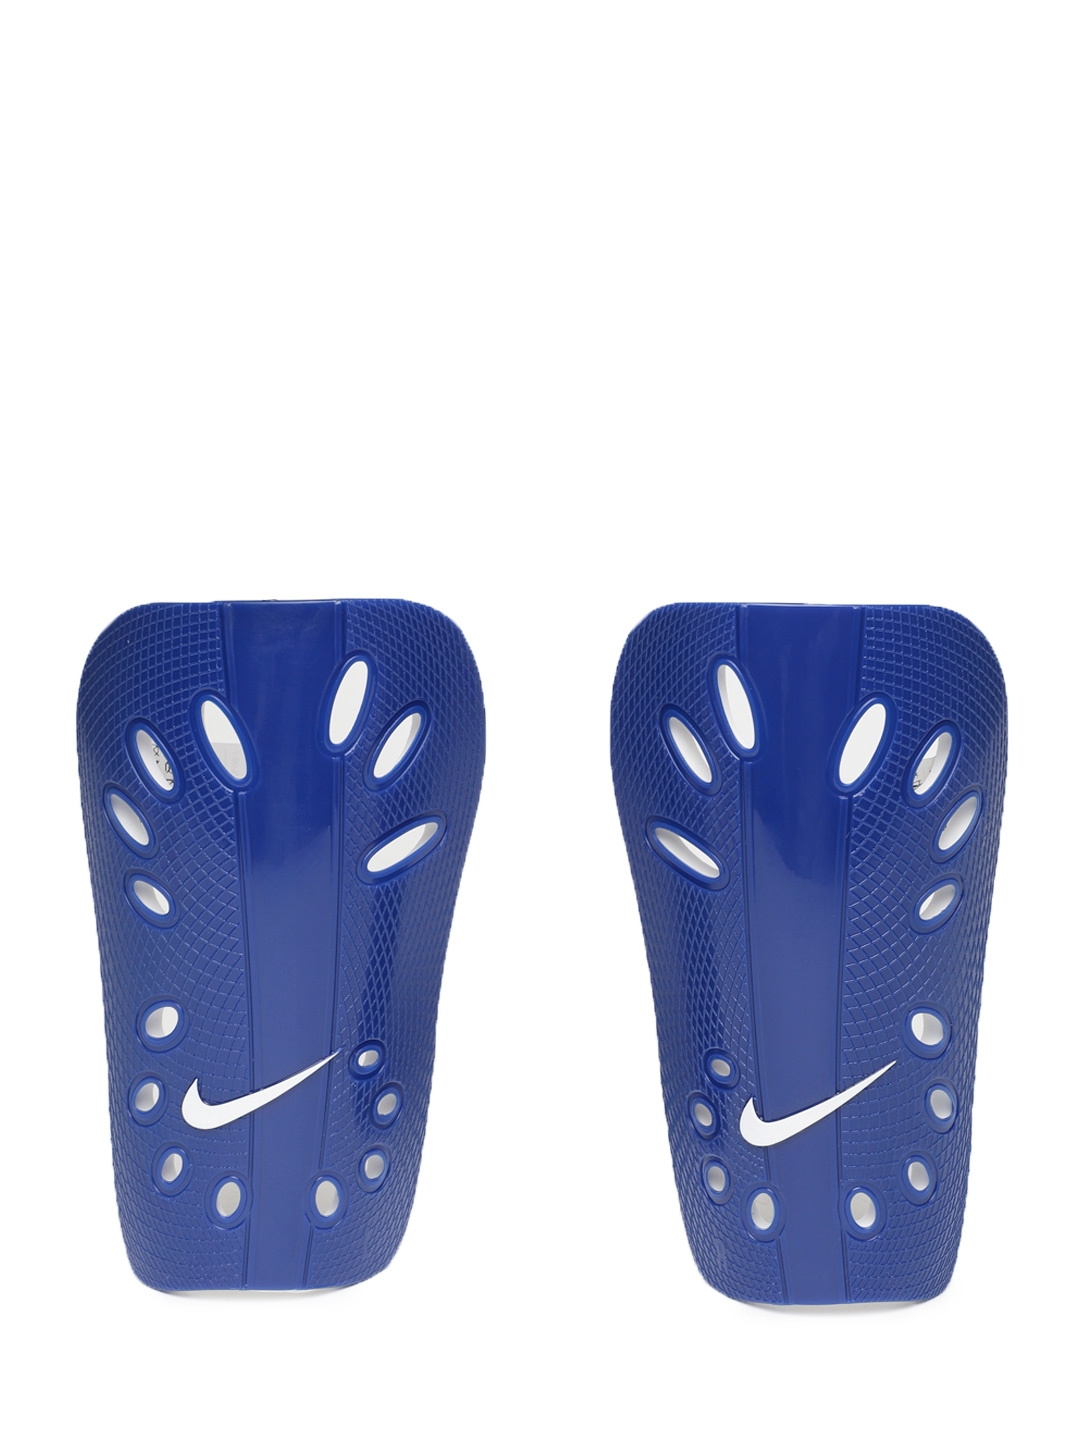 aa60909aac698e Buy Nike Unisex Blue Medium J Football Shin Guard - Sports ...